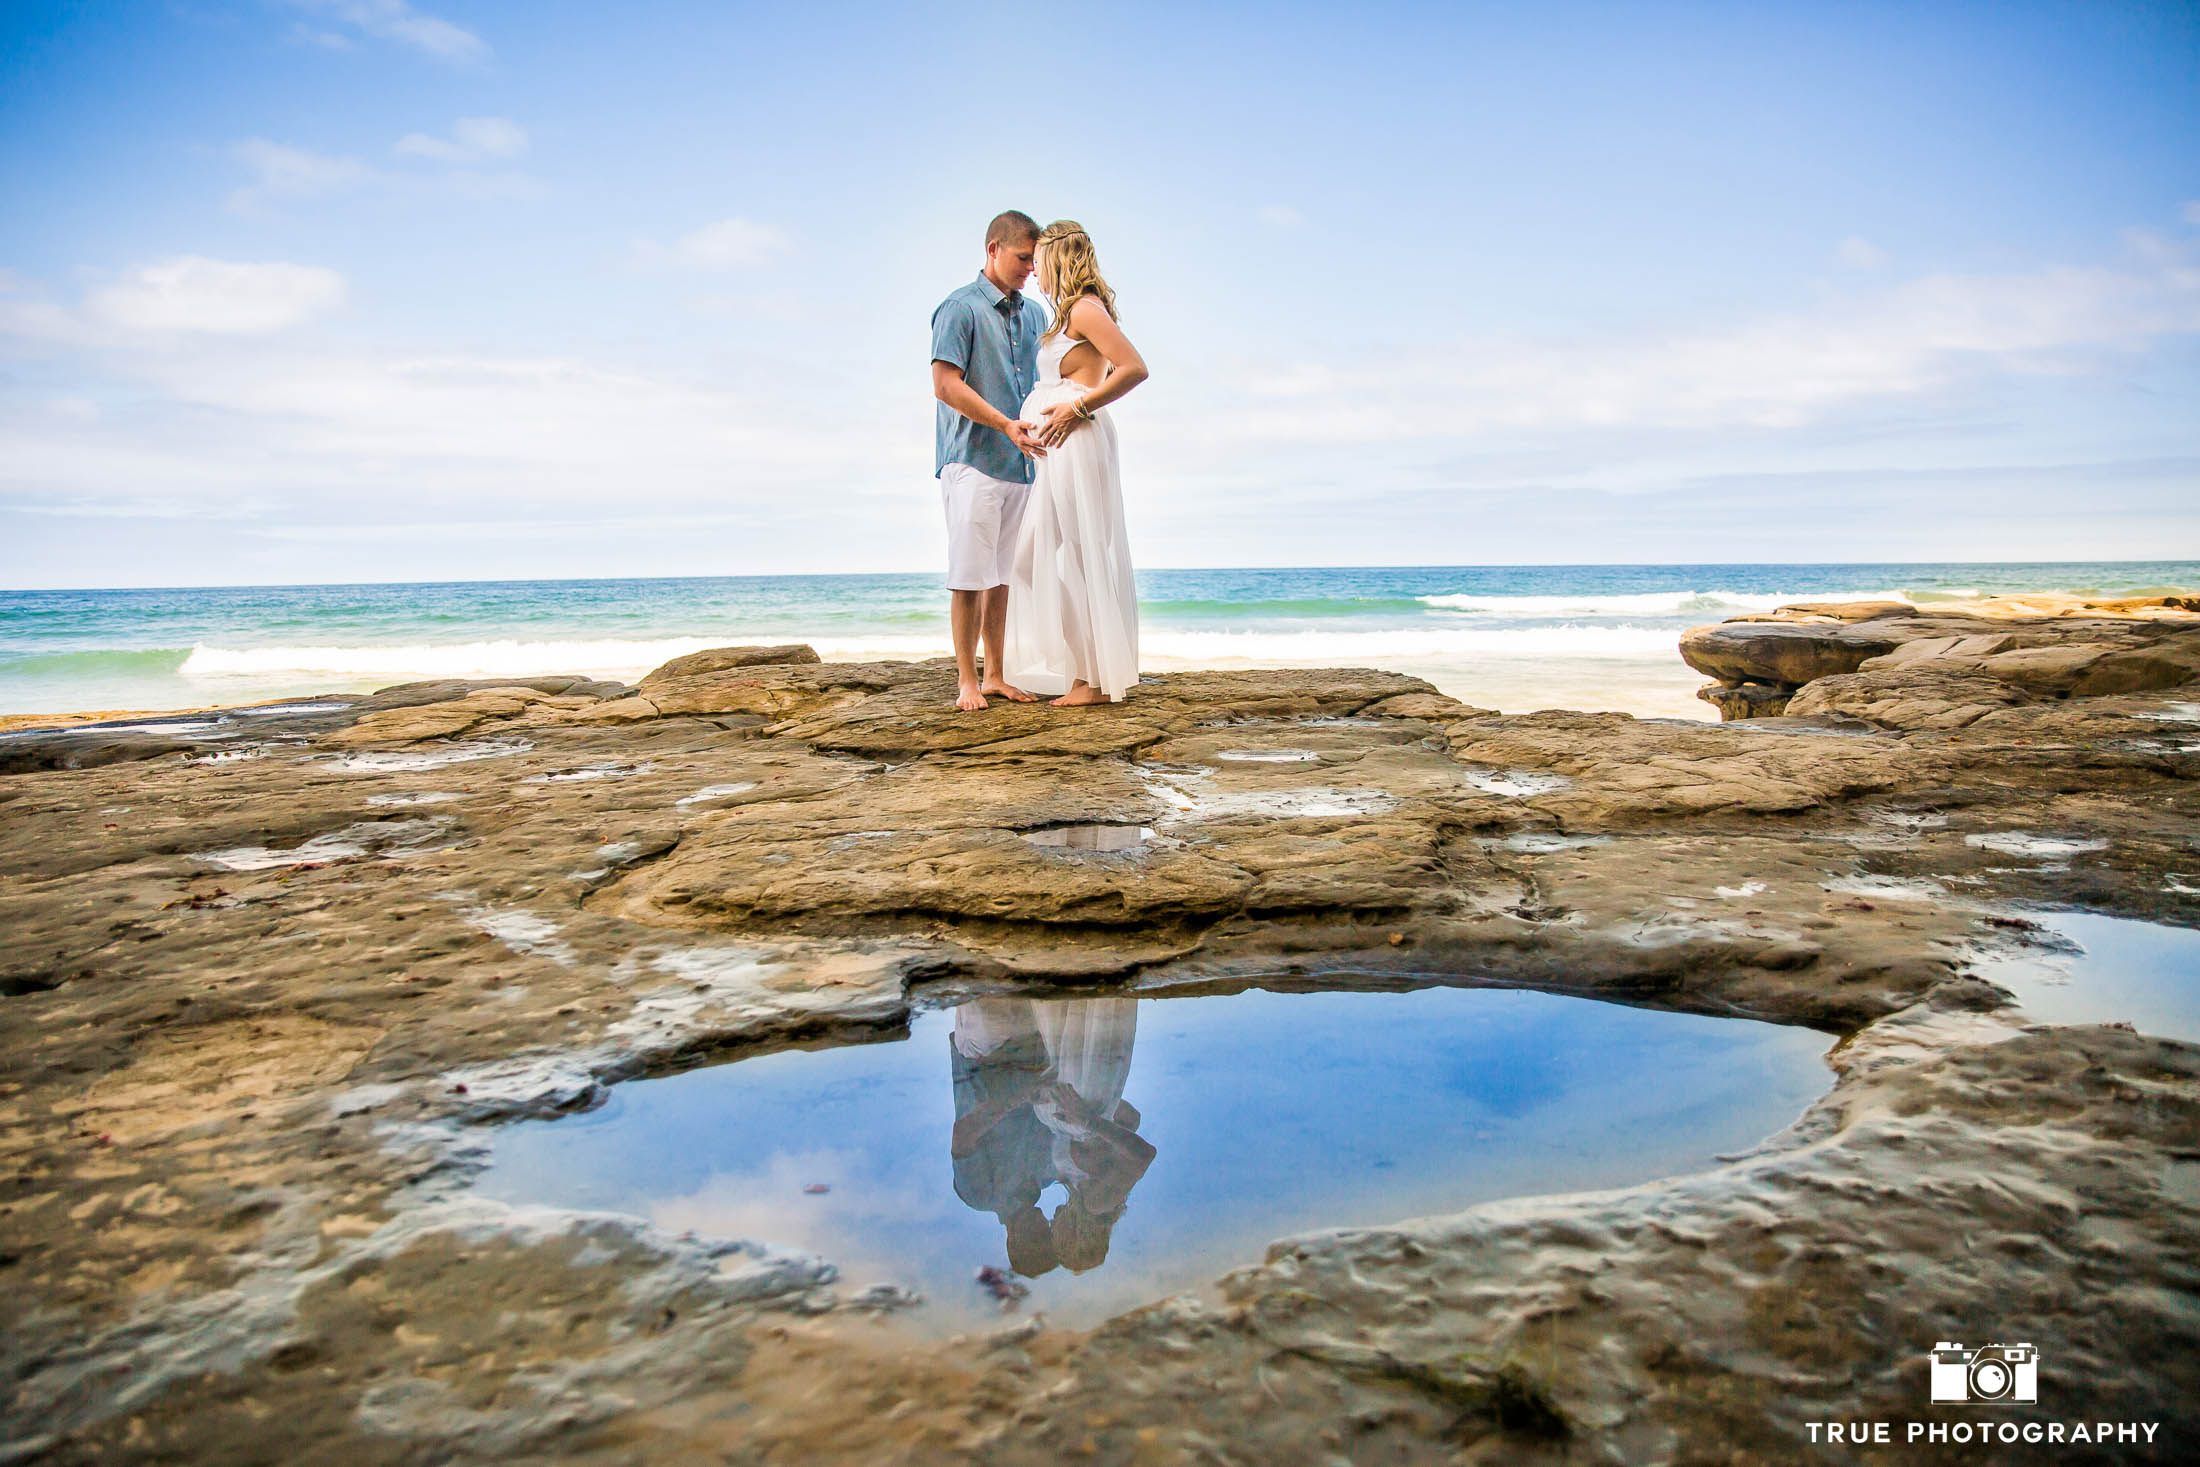 Expecting couple embraces during beach maternity